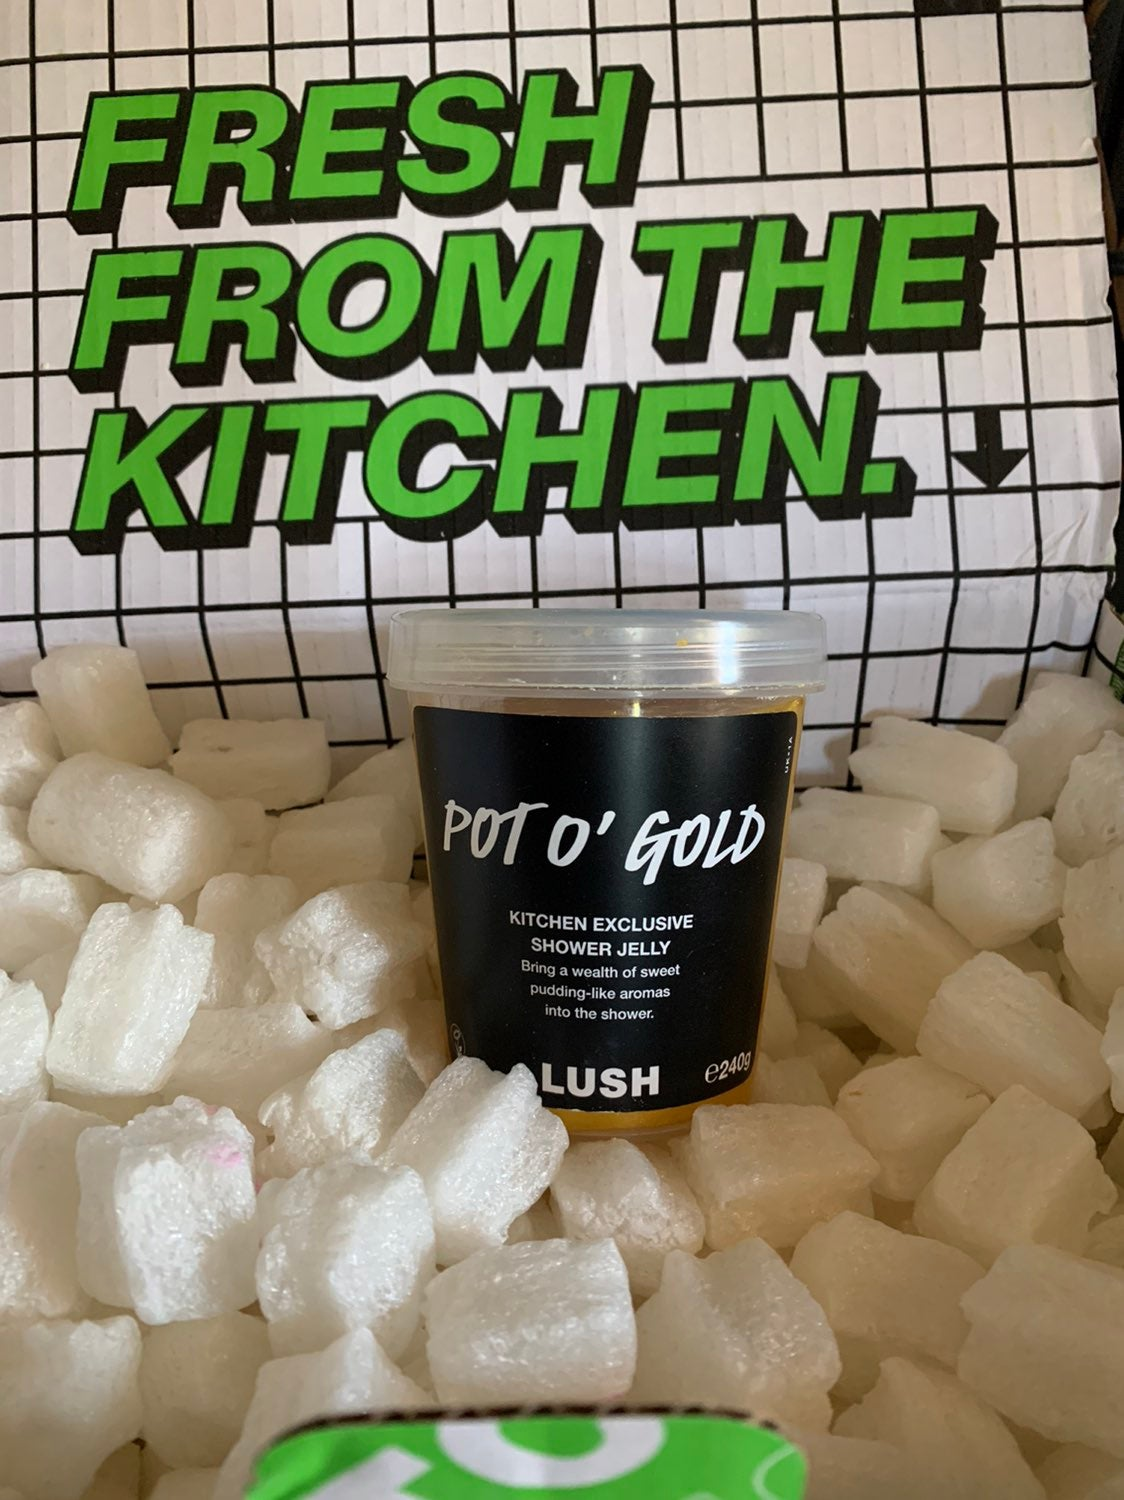 Pot O' Gold Lush Kitchen shower jelly